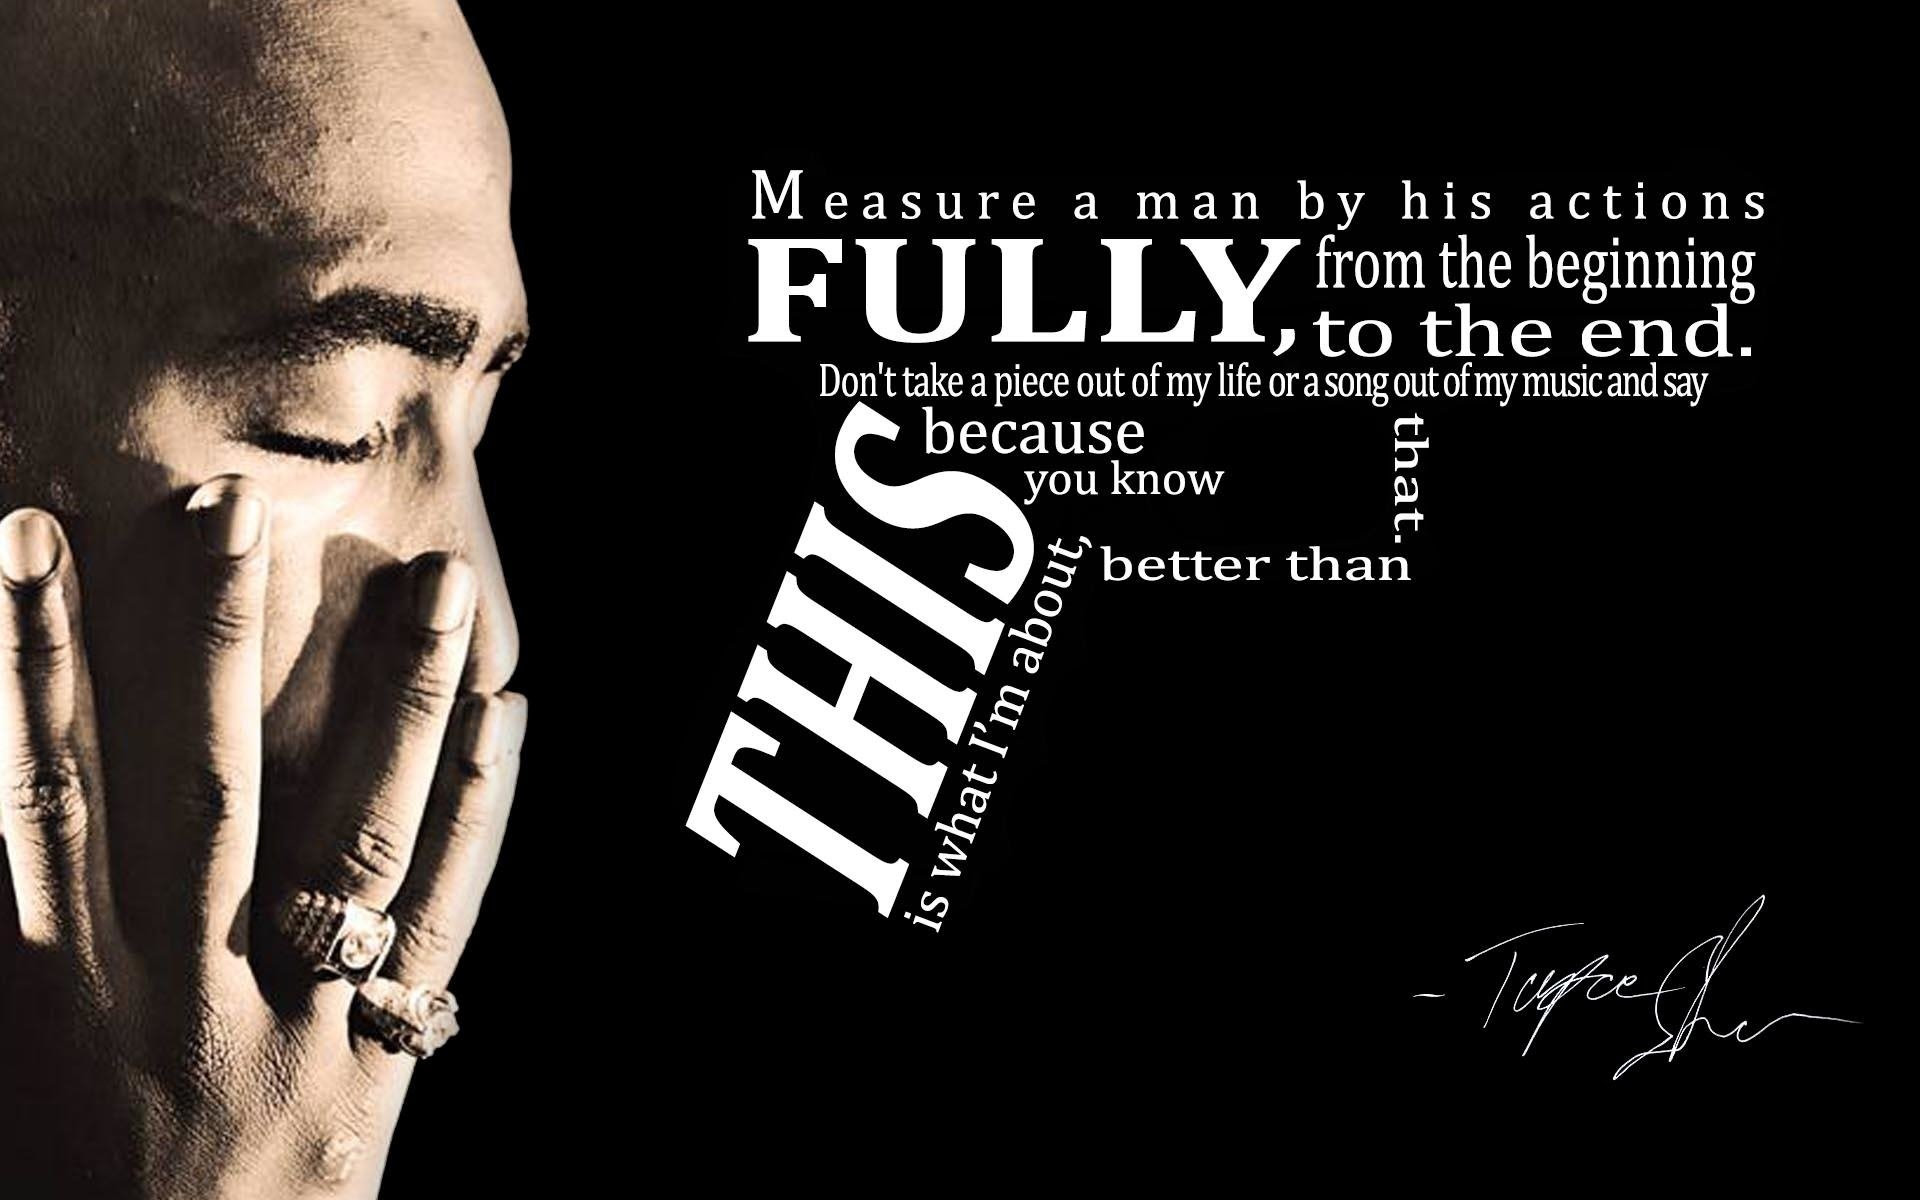 2Pac Shakur All Eyes Me Picture Wallpaper 2pac Wallpaper